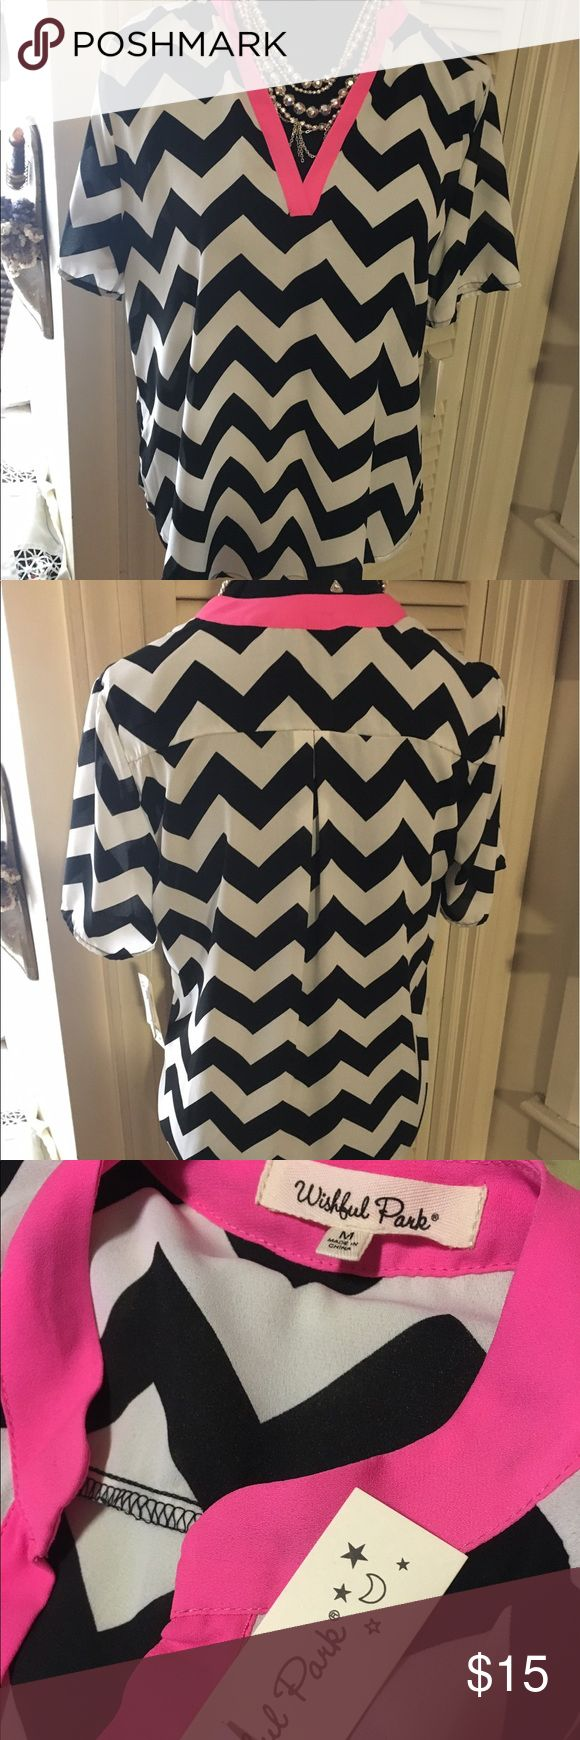 🌸NWT Wishful Park sheer chevron top🌸 Sheer black and white chevron top with hot pink trim at neckline. Great summer or office top.  Wishful park.  NWT.  Short sleeve. Wishful Park Tops Blouses